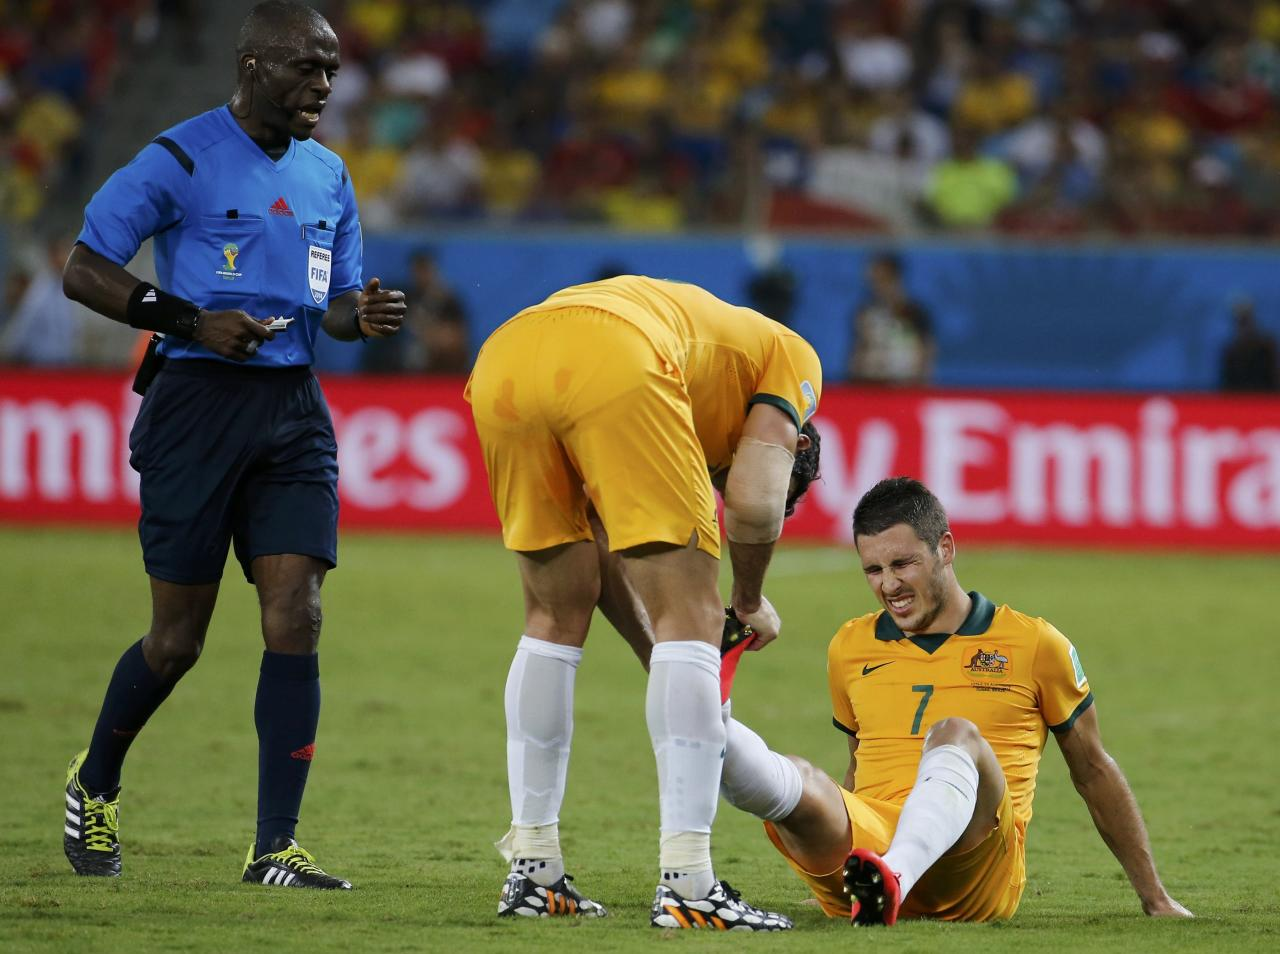 Australia's Matthew Leckie (bottom R) grimaces on the pitch, near referee Noumandiez Doue of Ivory Coast (L), during the team's 2014 World Cup Group B soccer match against Chile at the Pantanal arena in Cuiaba June 13, 2014. REUTERS/Eric Gaillard (BRAZIL - Tags: SOCCER SPORT WORLD CUP)